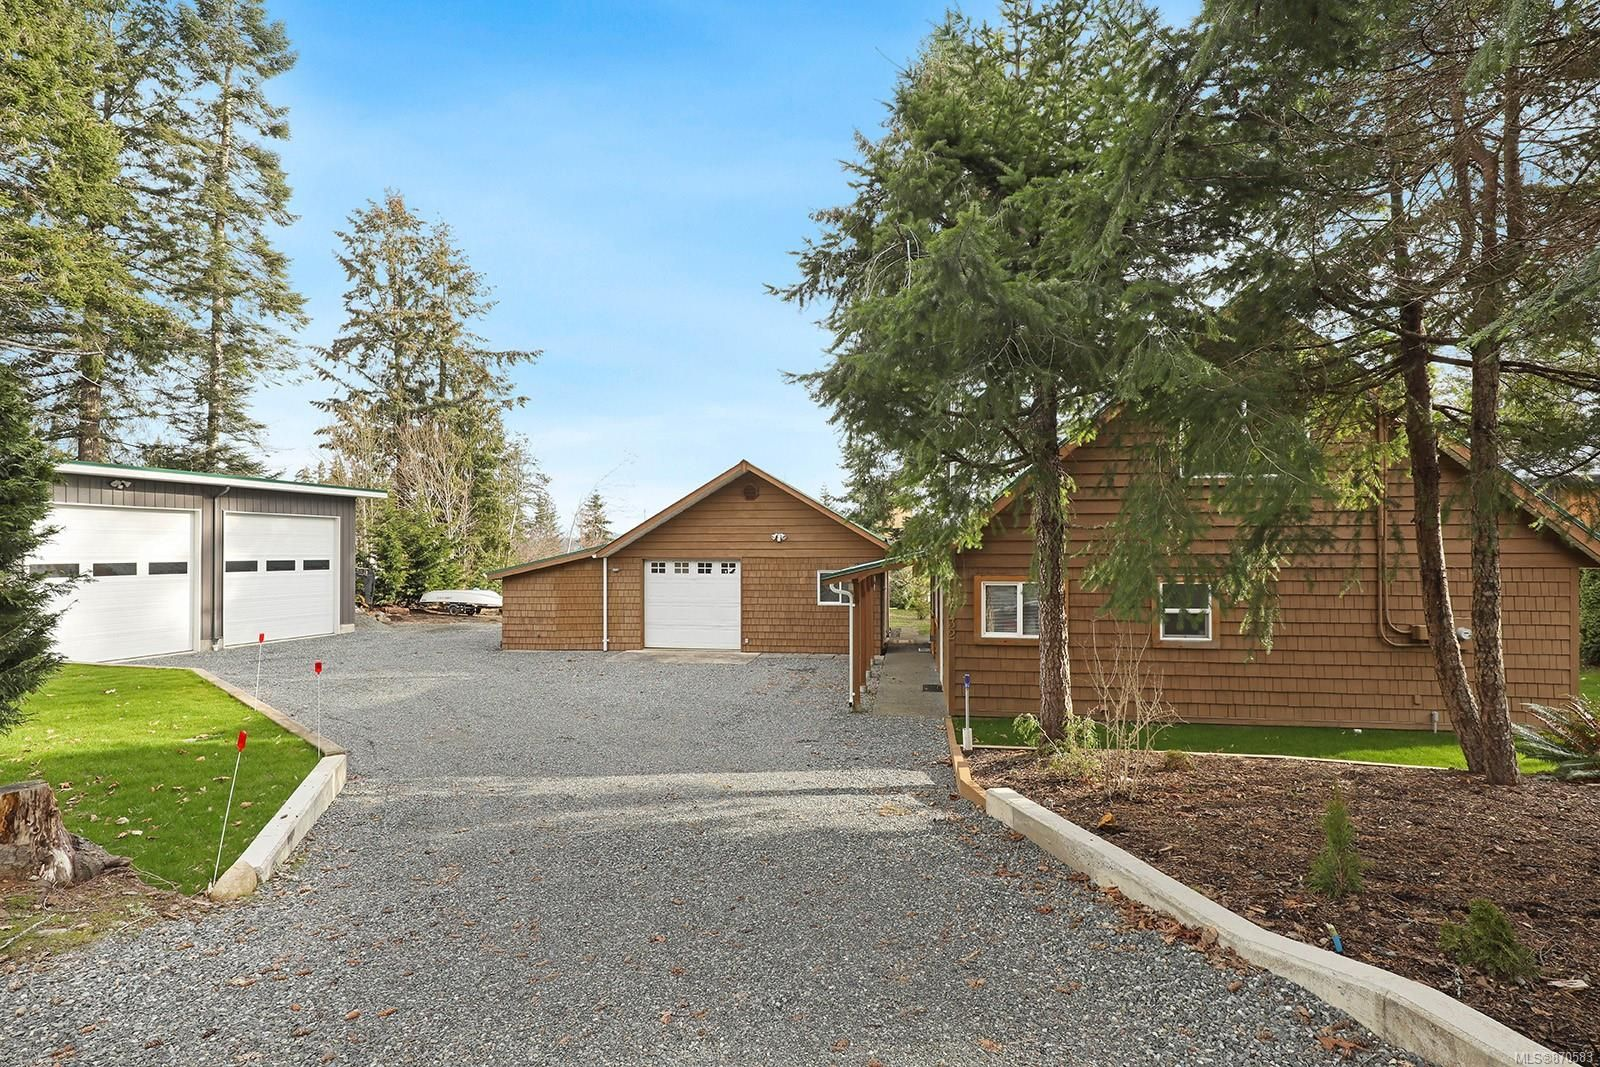 Main Photo: 6632 Mystery Beach Dr in : CV Union Bay/Fanny Bay House for sale (Comox Valley)  : MLS®# 870583